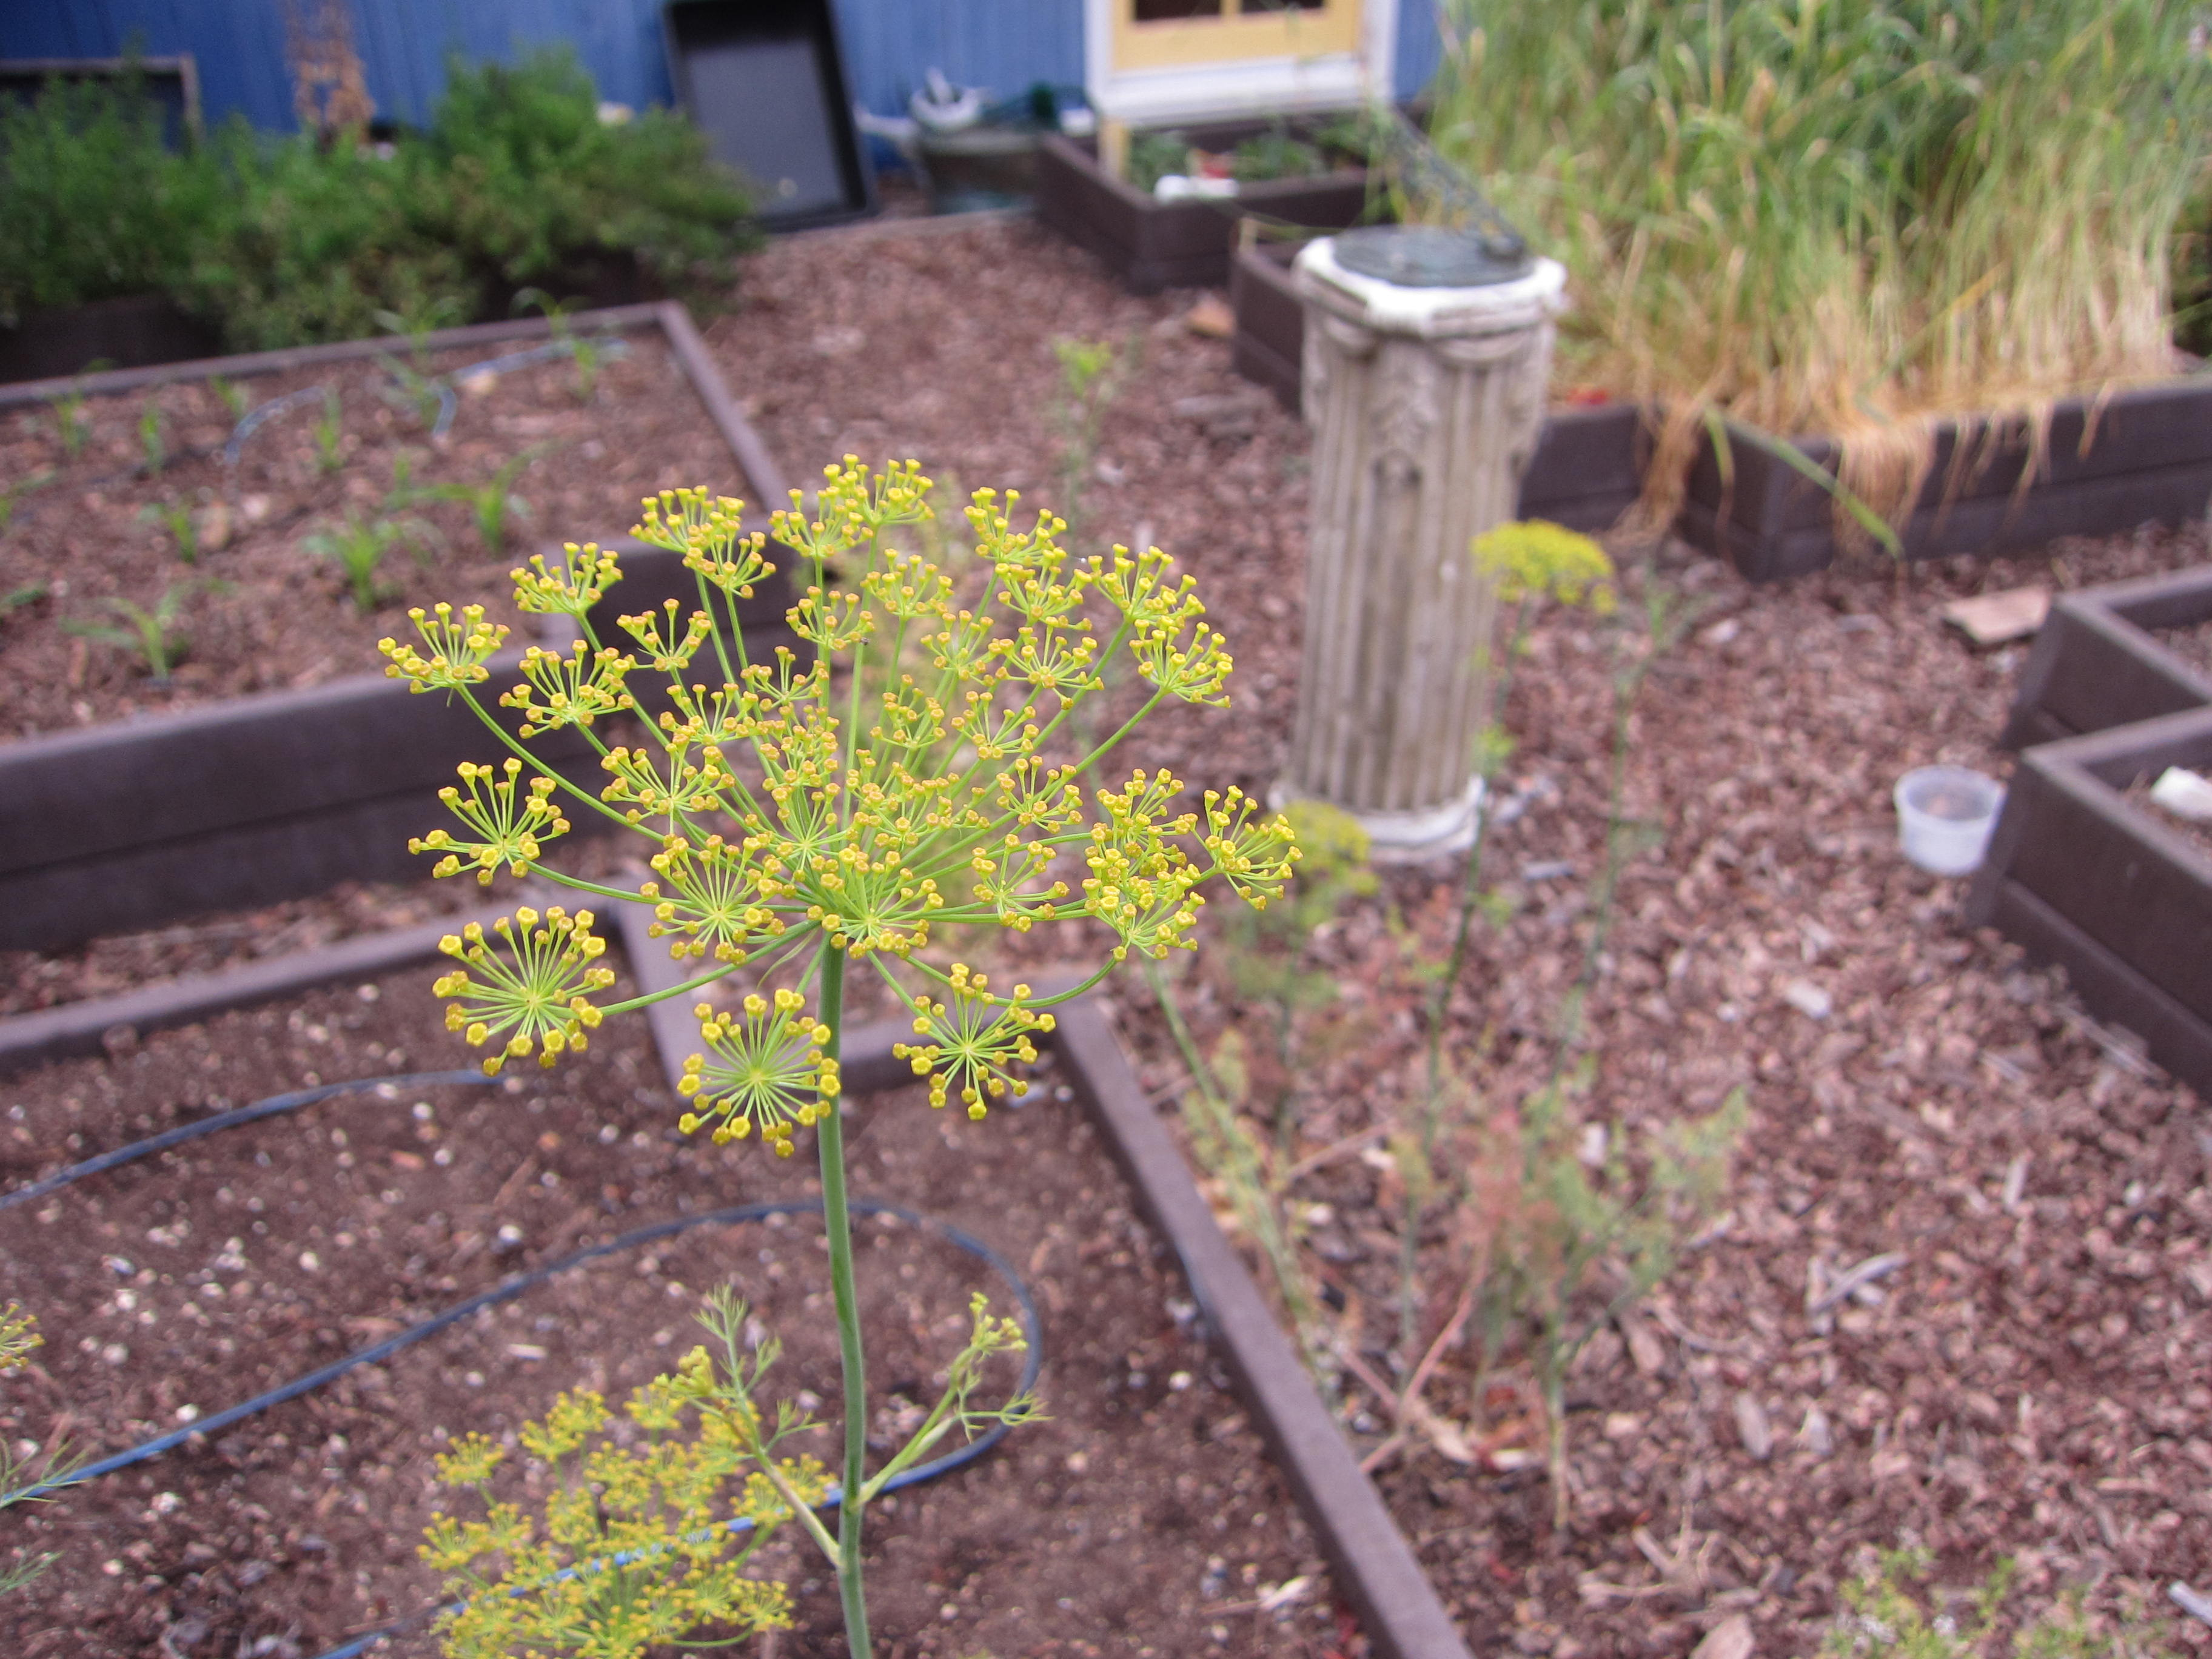 Another volunteer - dill makes a beautiful flower and attracts beneficial insects to the garden. We'll toss the seeds into the corners to continue the tradition.